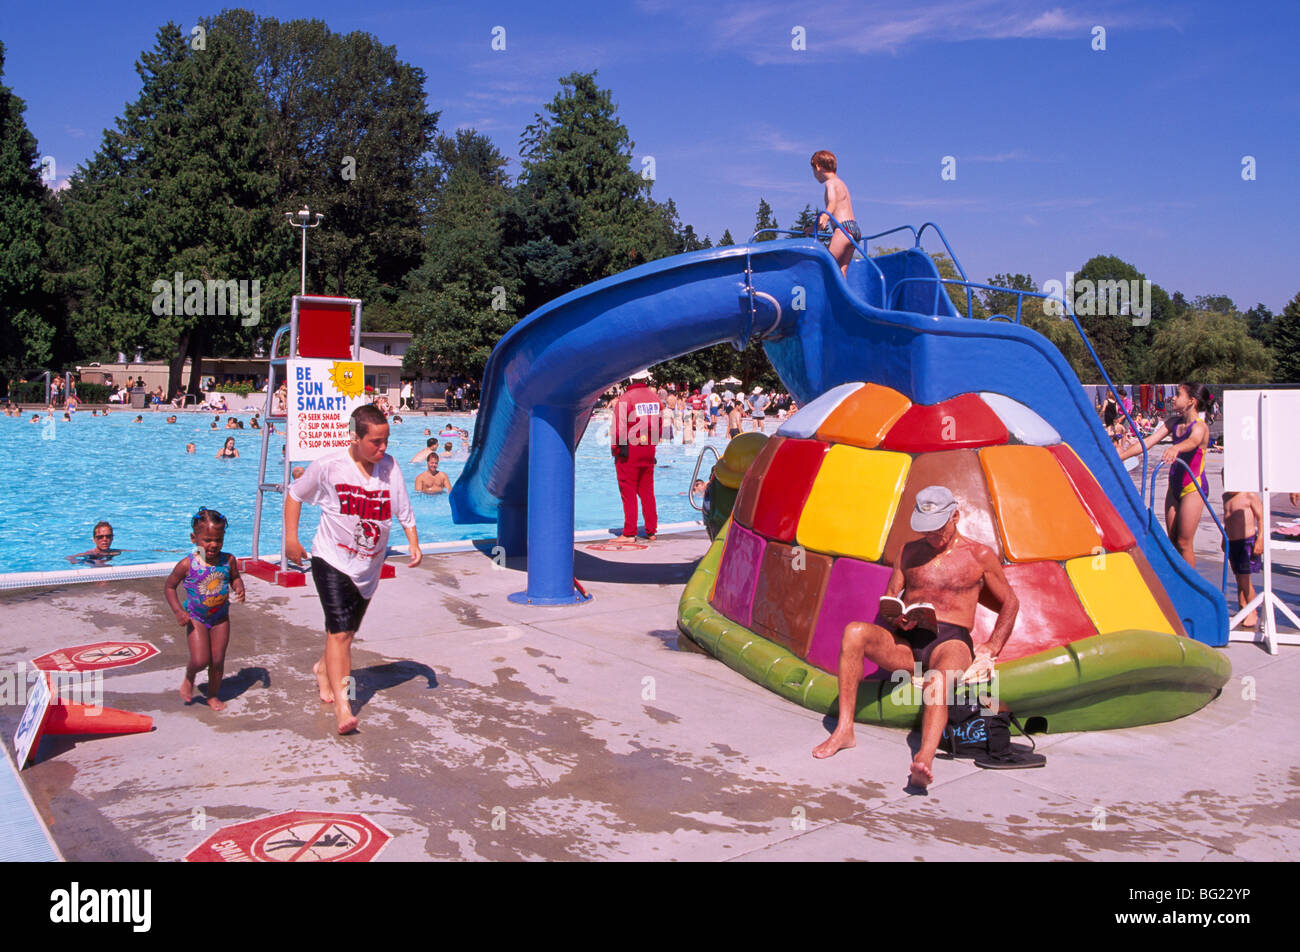 Children 39 S Water Slide At Outdoor Swimming Pool Stanley Park Stock Photo 27091114 Alamy